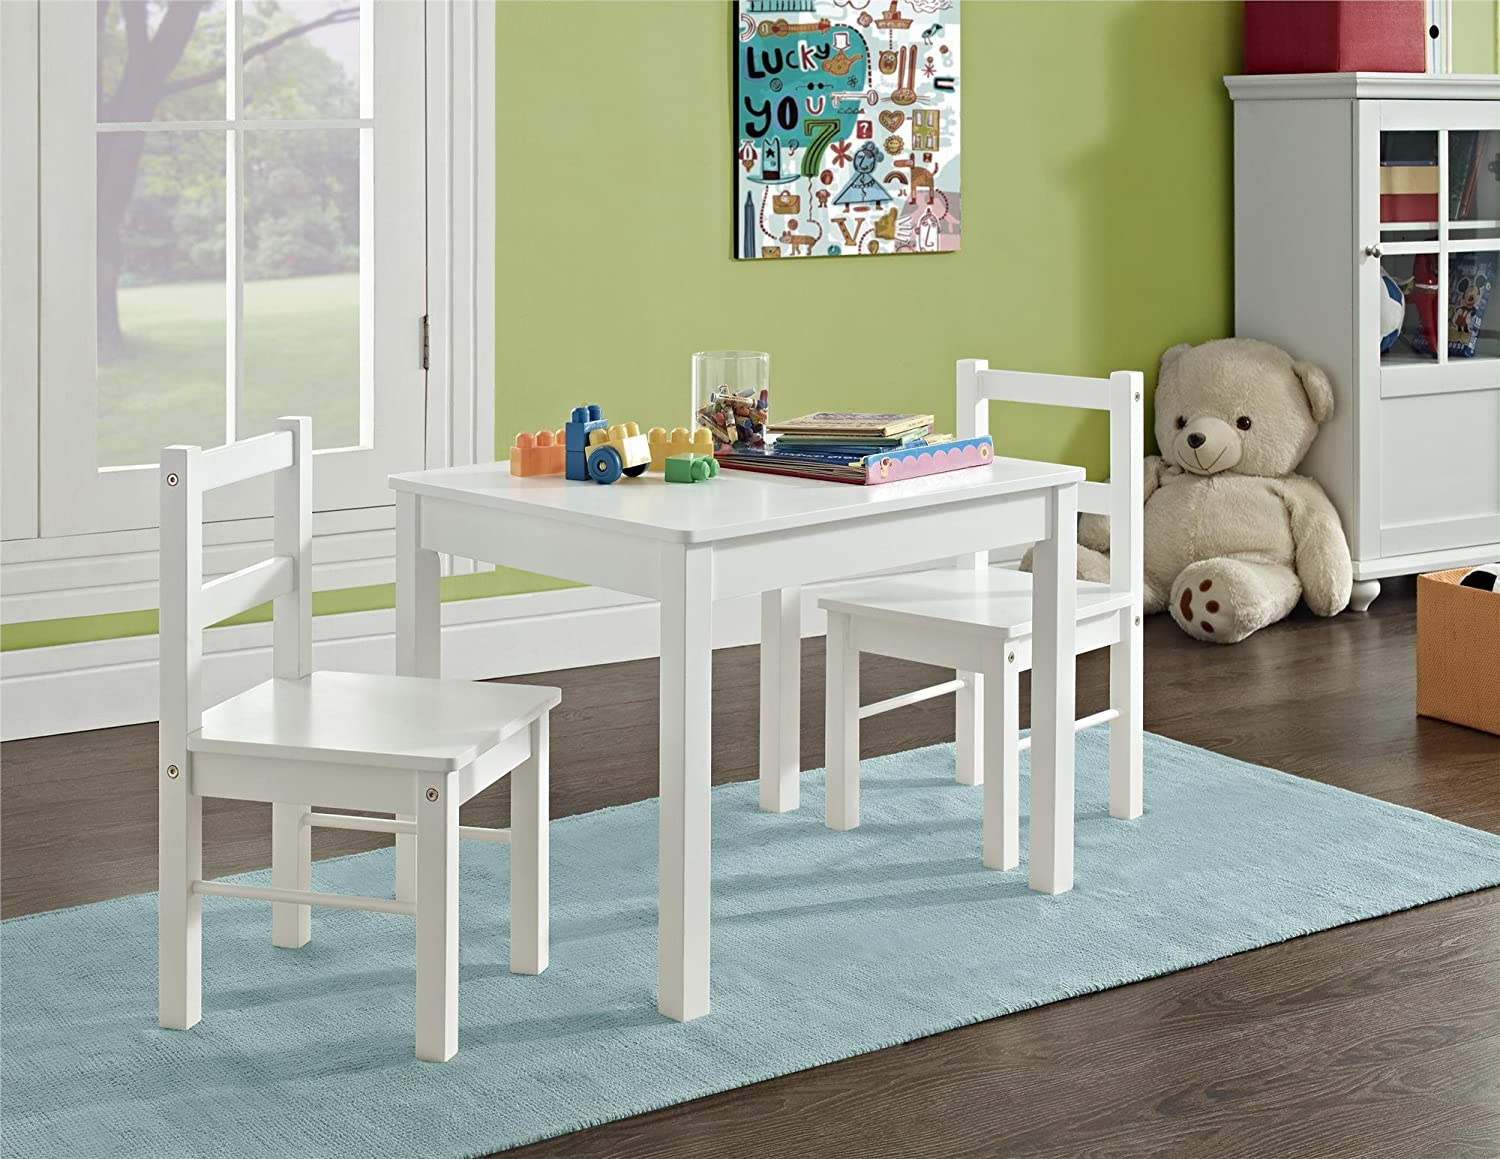 Amazon.com Ameriwood Home Hazel Kid\u0027s Table and Chairs Set White Kitchen \u0026 Dining : childrens white table and chair set - pezcame.com